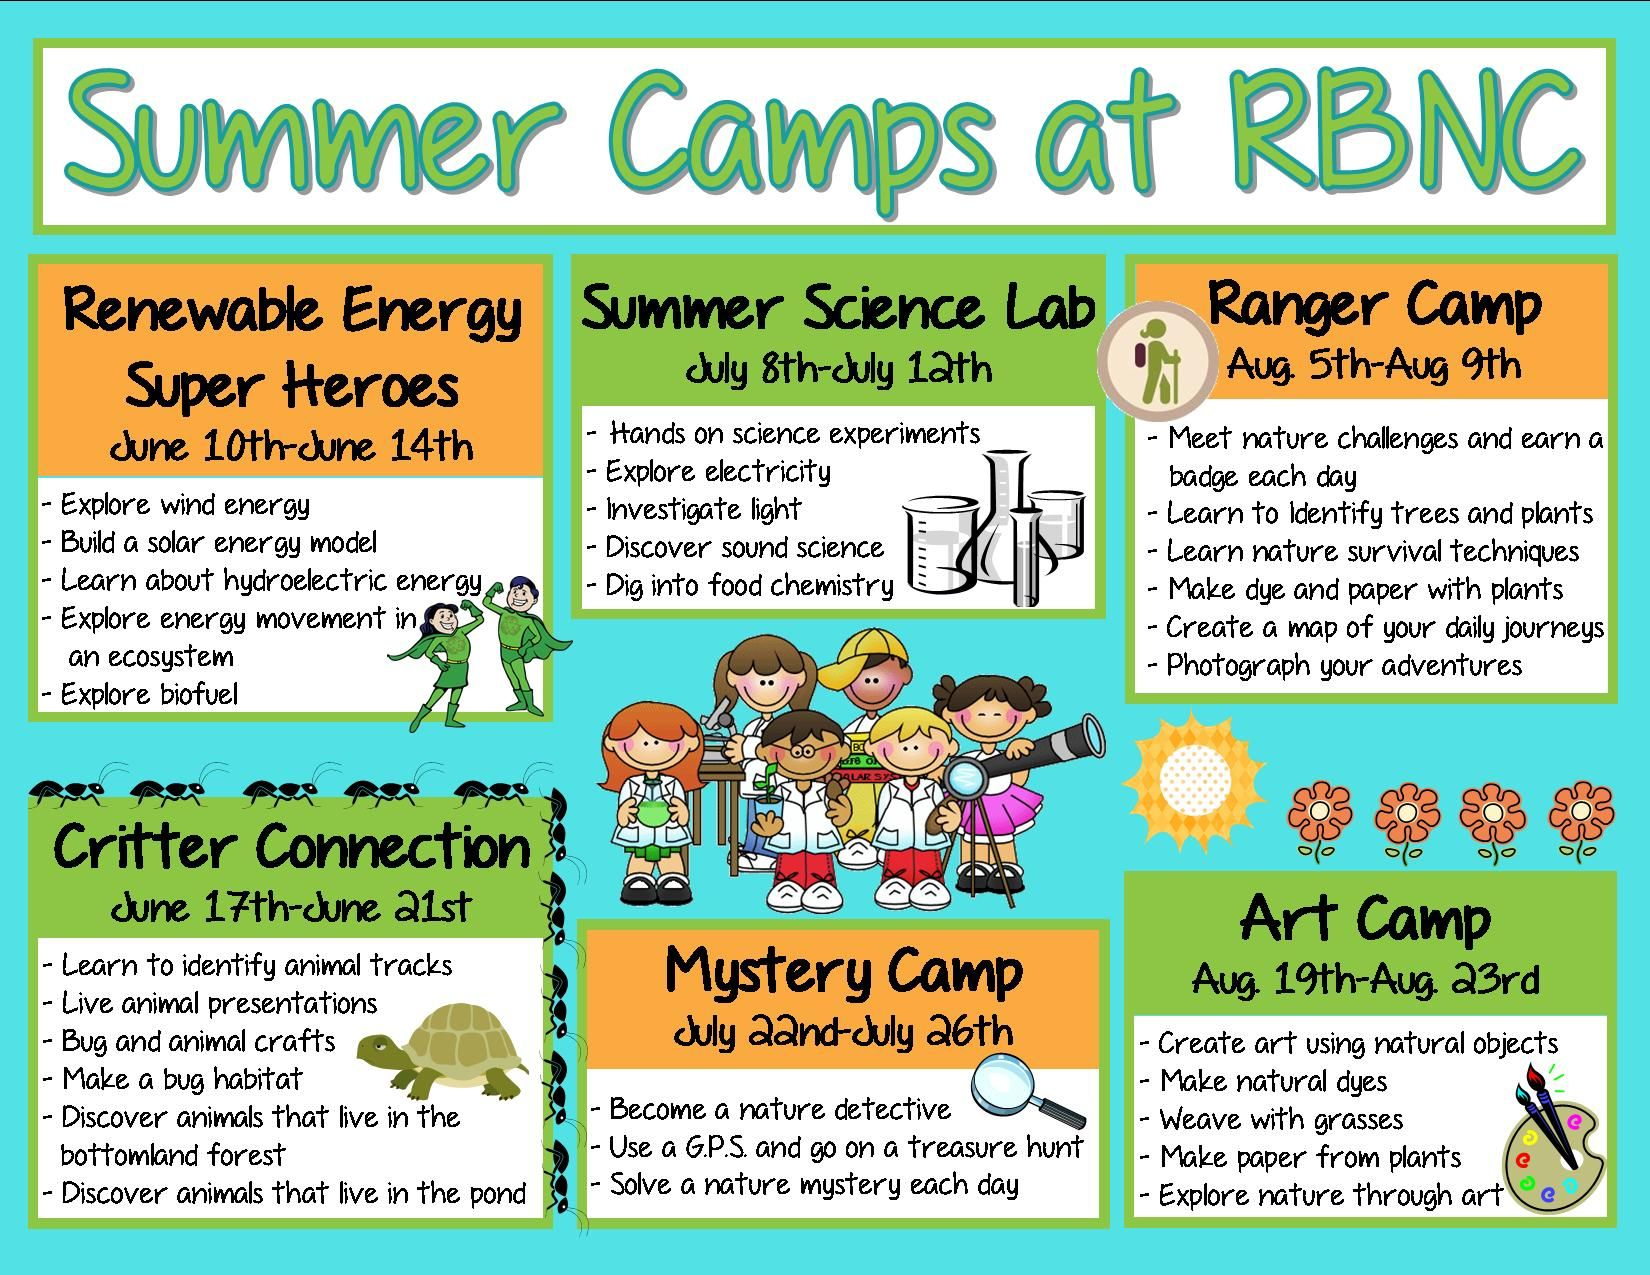 10 Most Popular Ideas For Summer Camp Themes summer camp themes summer camps for everyone at river bend kauz 3 2020